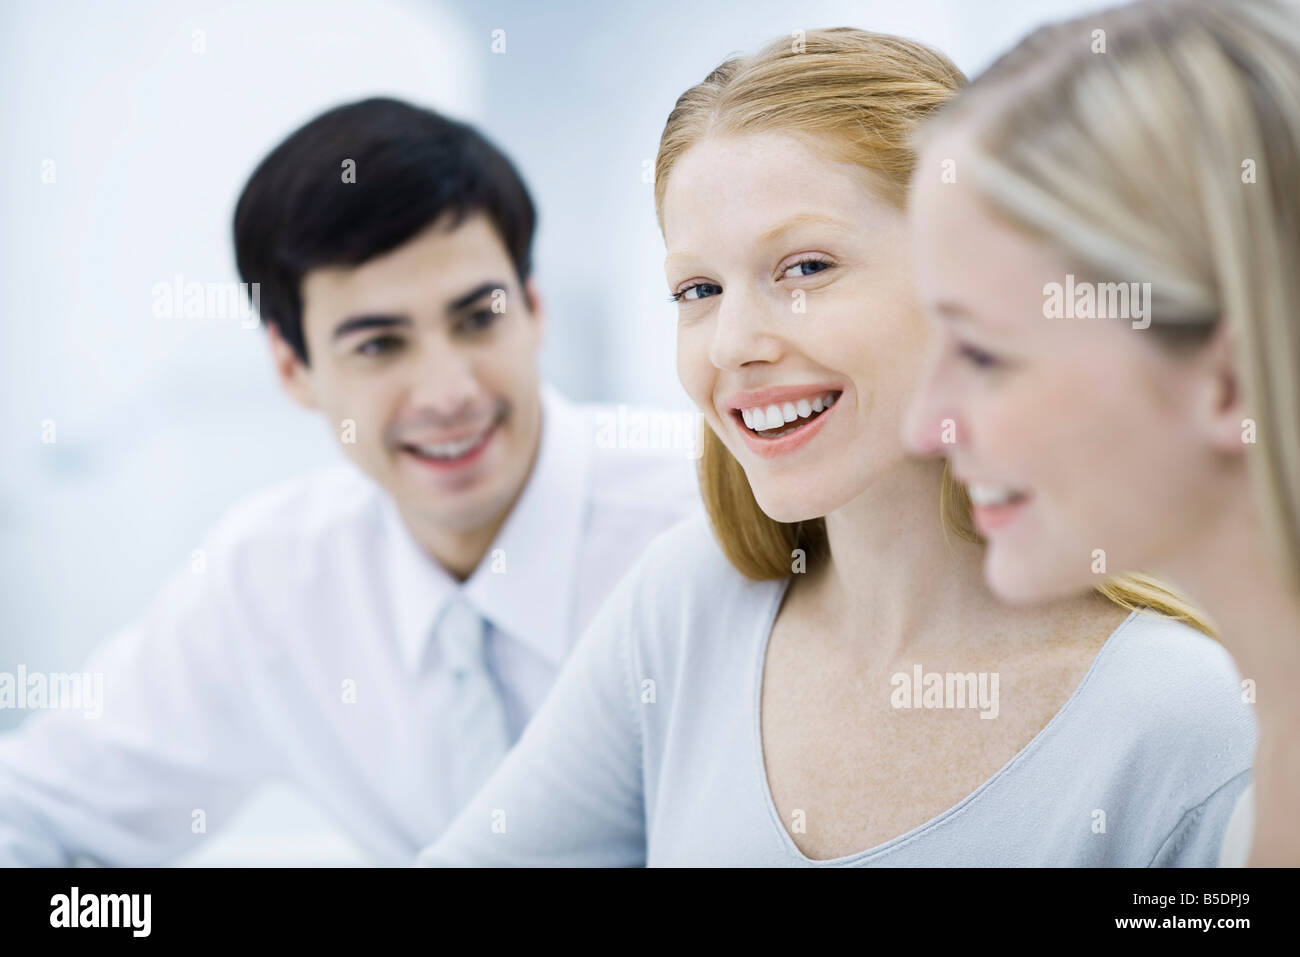 Young professional woman between two colleagues, smiling at camera - Stock Image